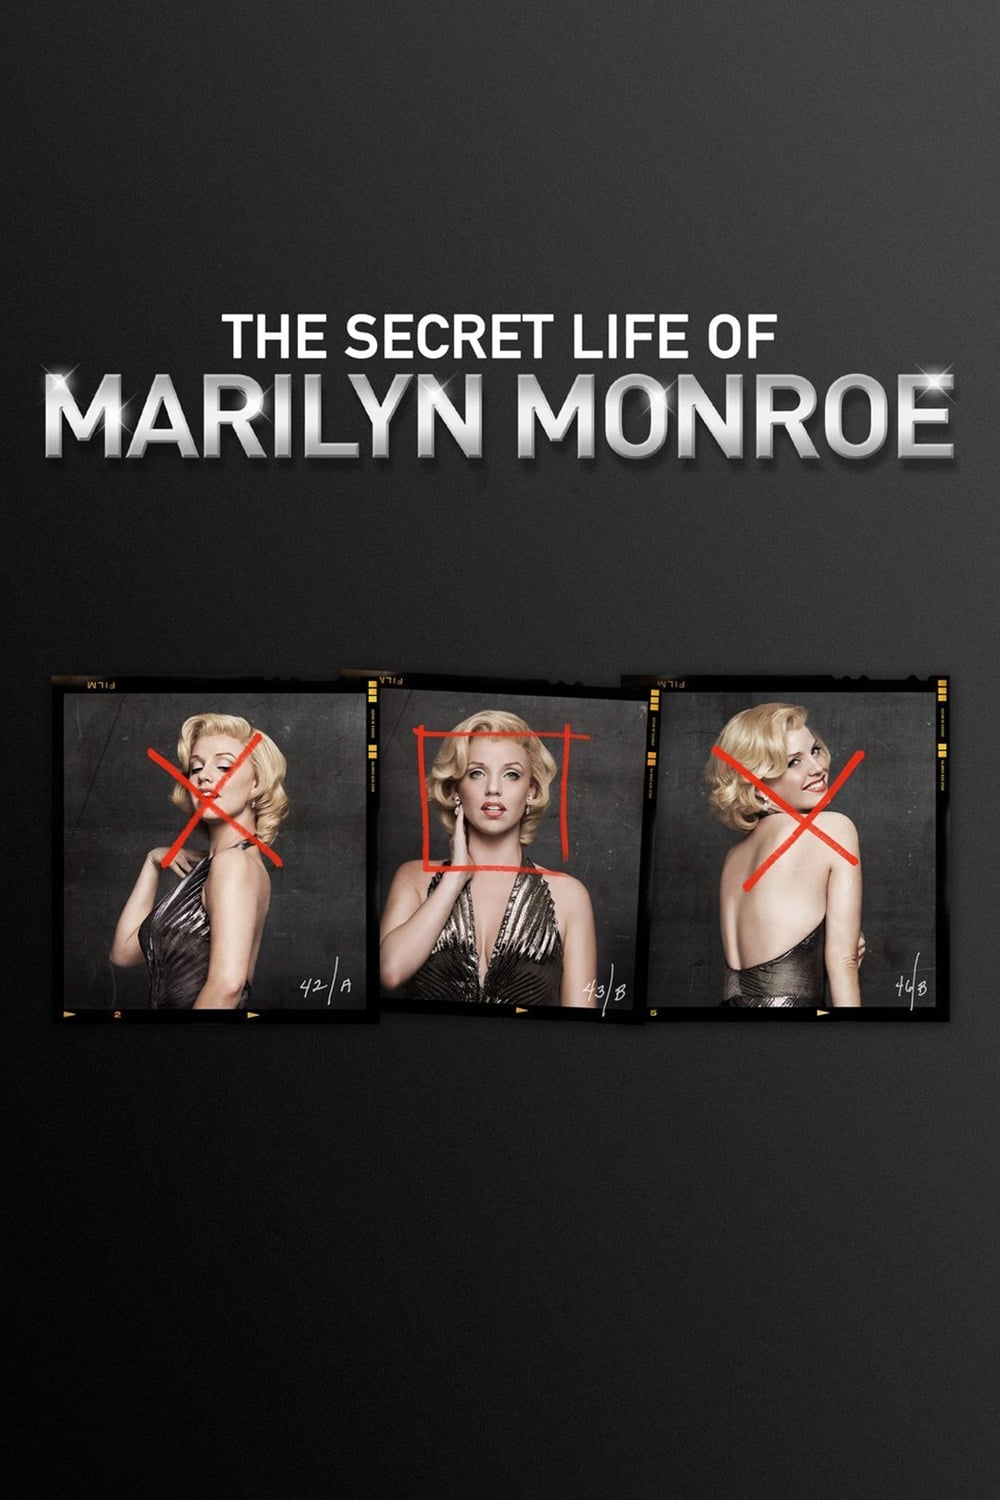 The Secret Life of Marilyn Monroe (2015)